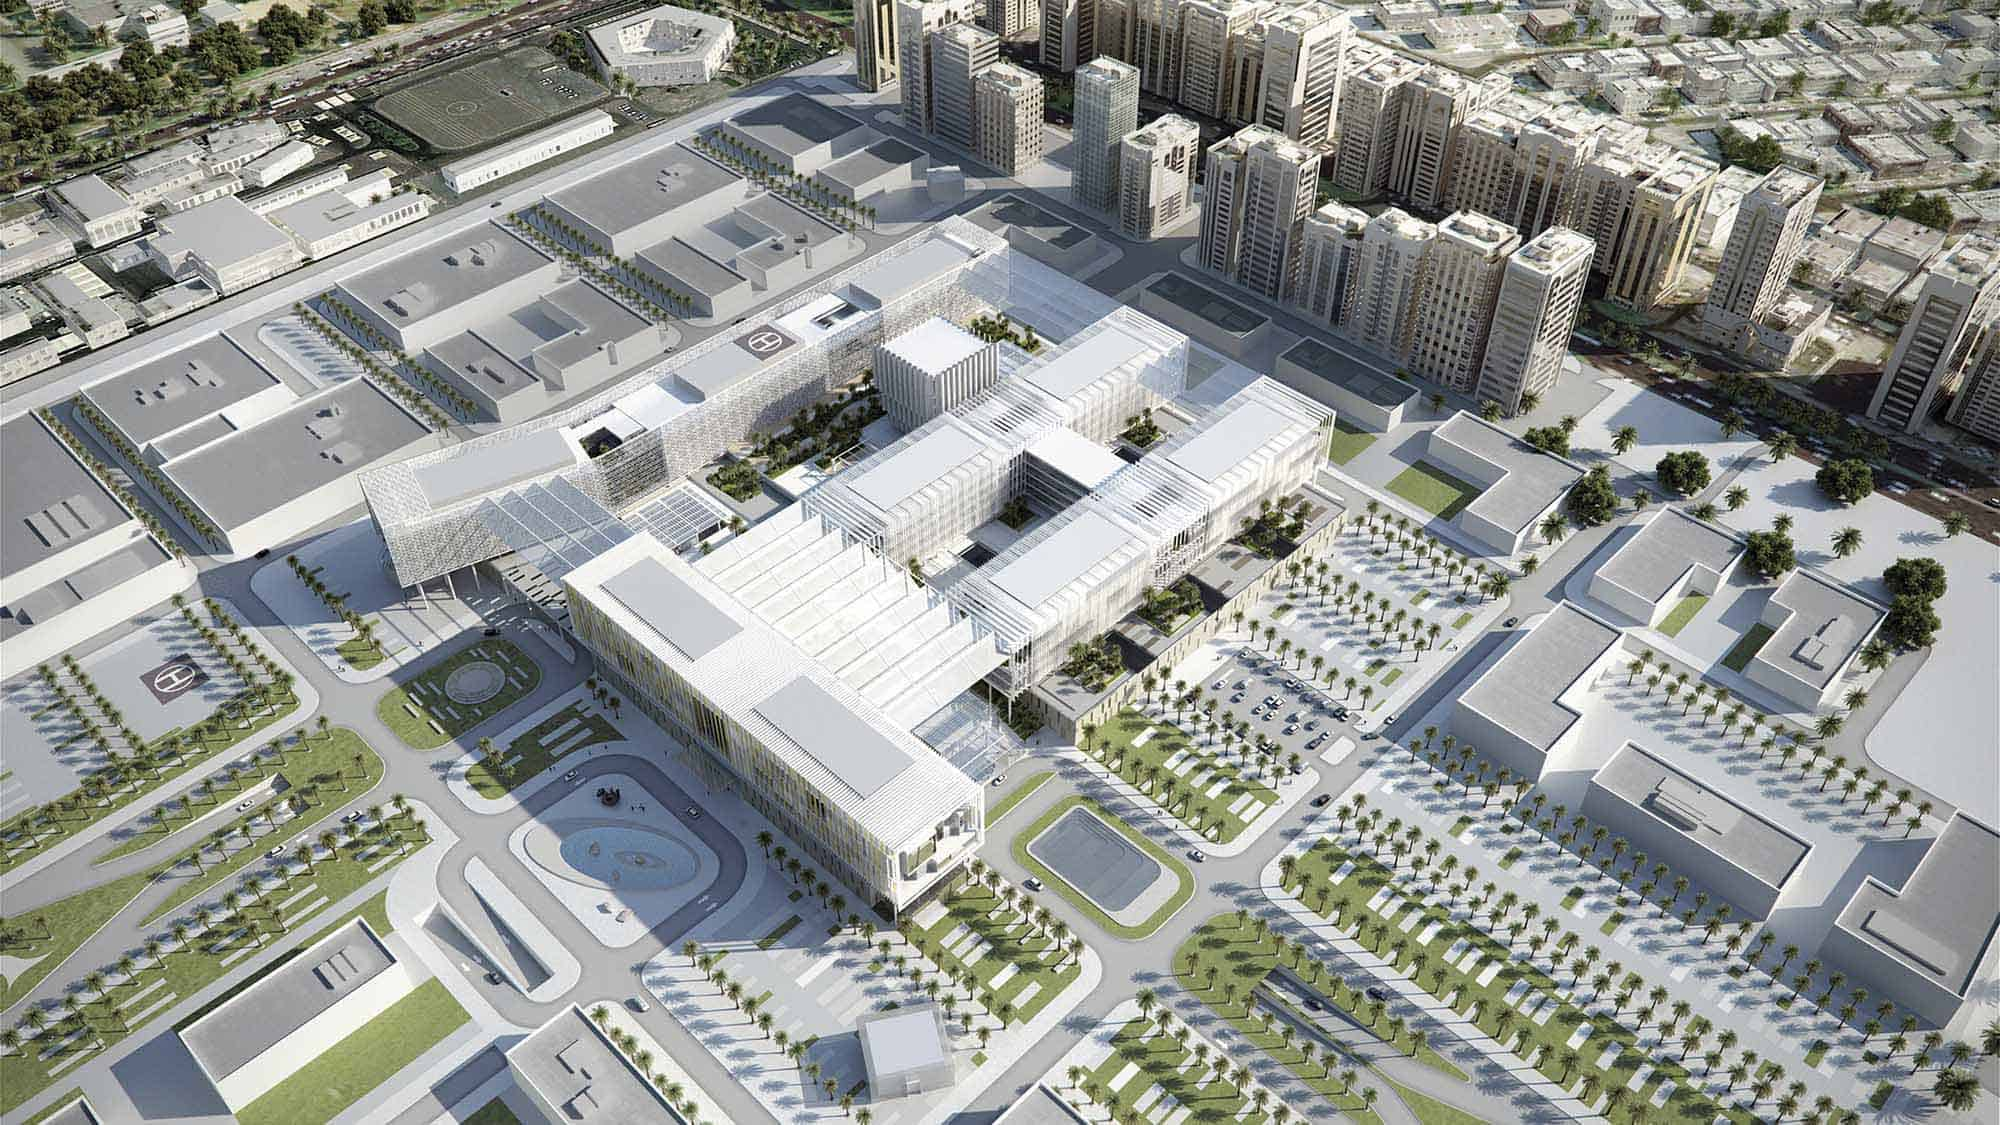 SHEIKH KHALIFA MEDICAL CITY ABU DHABI